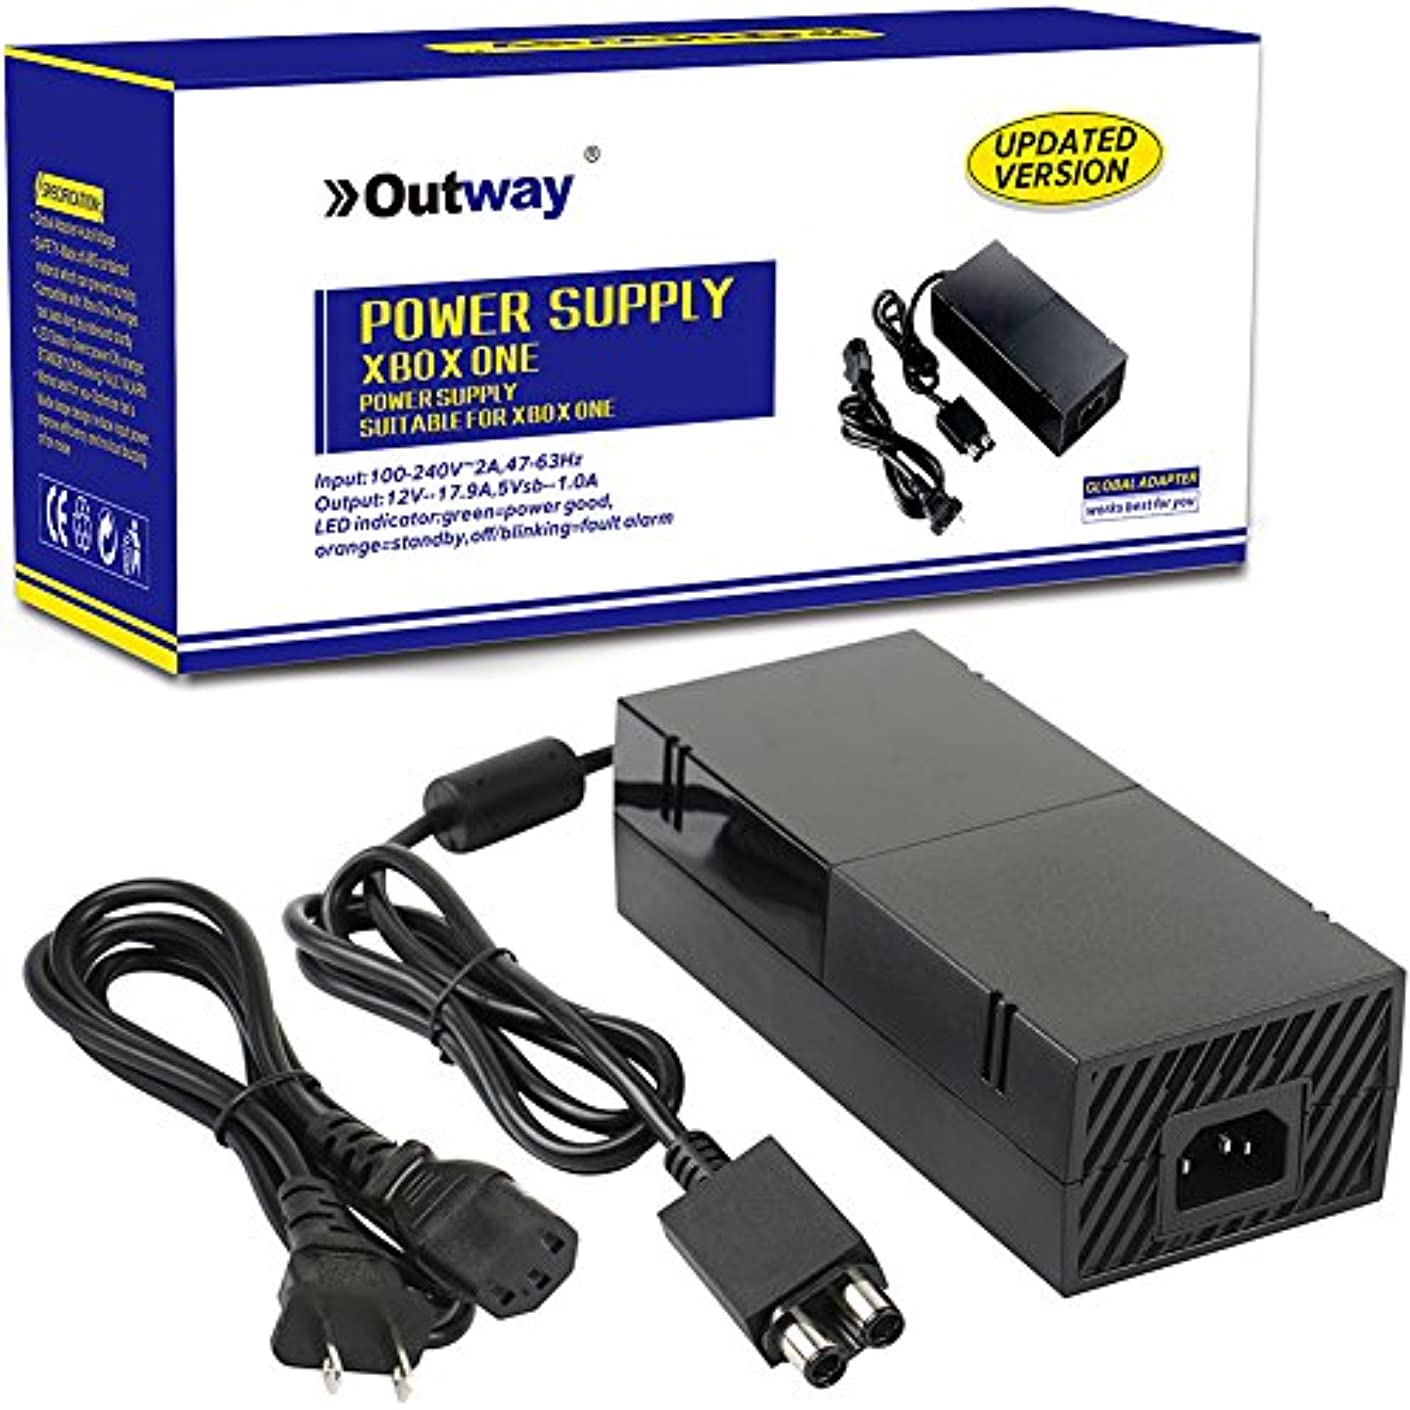 [Updated Version] OEM AC Adapter Charger Power Supply for Xbox One Console with Cord Cable